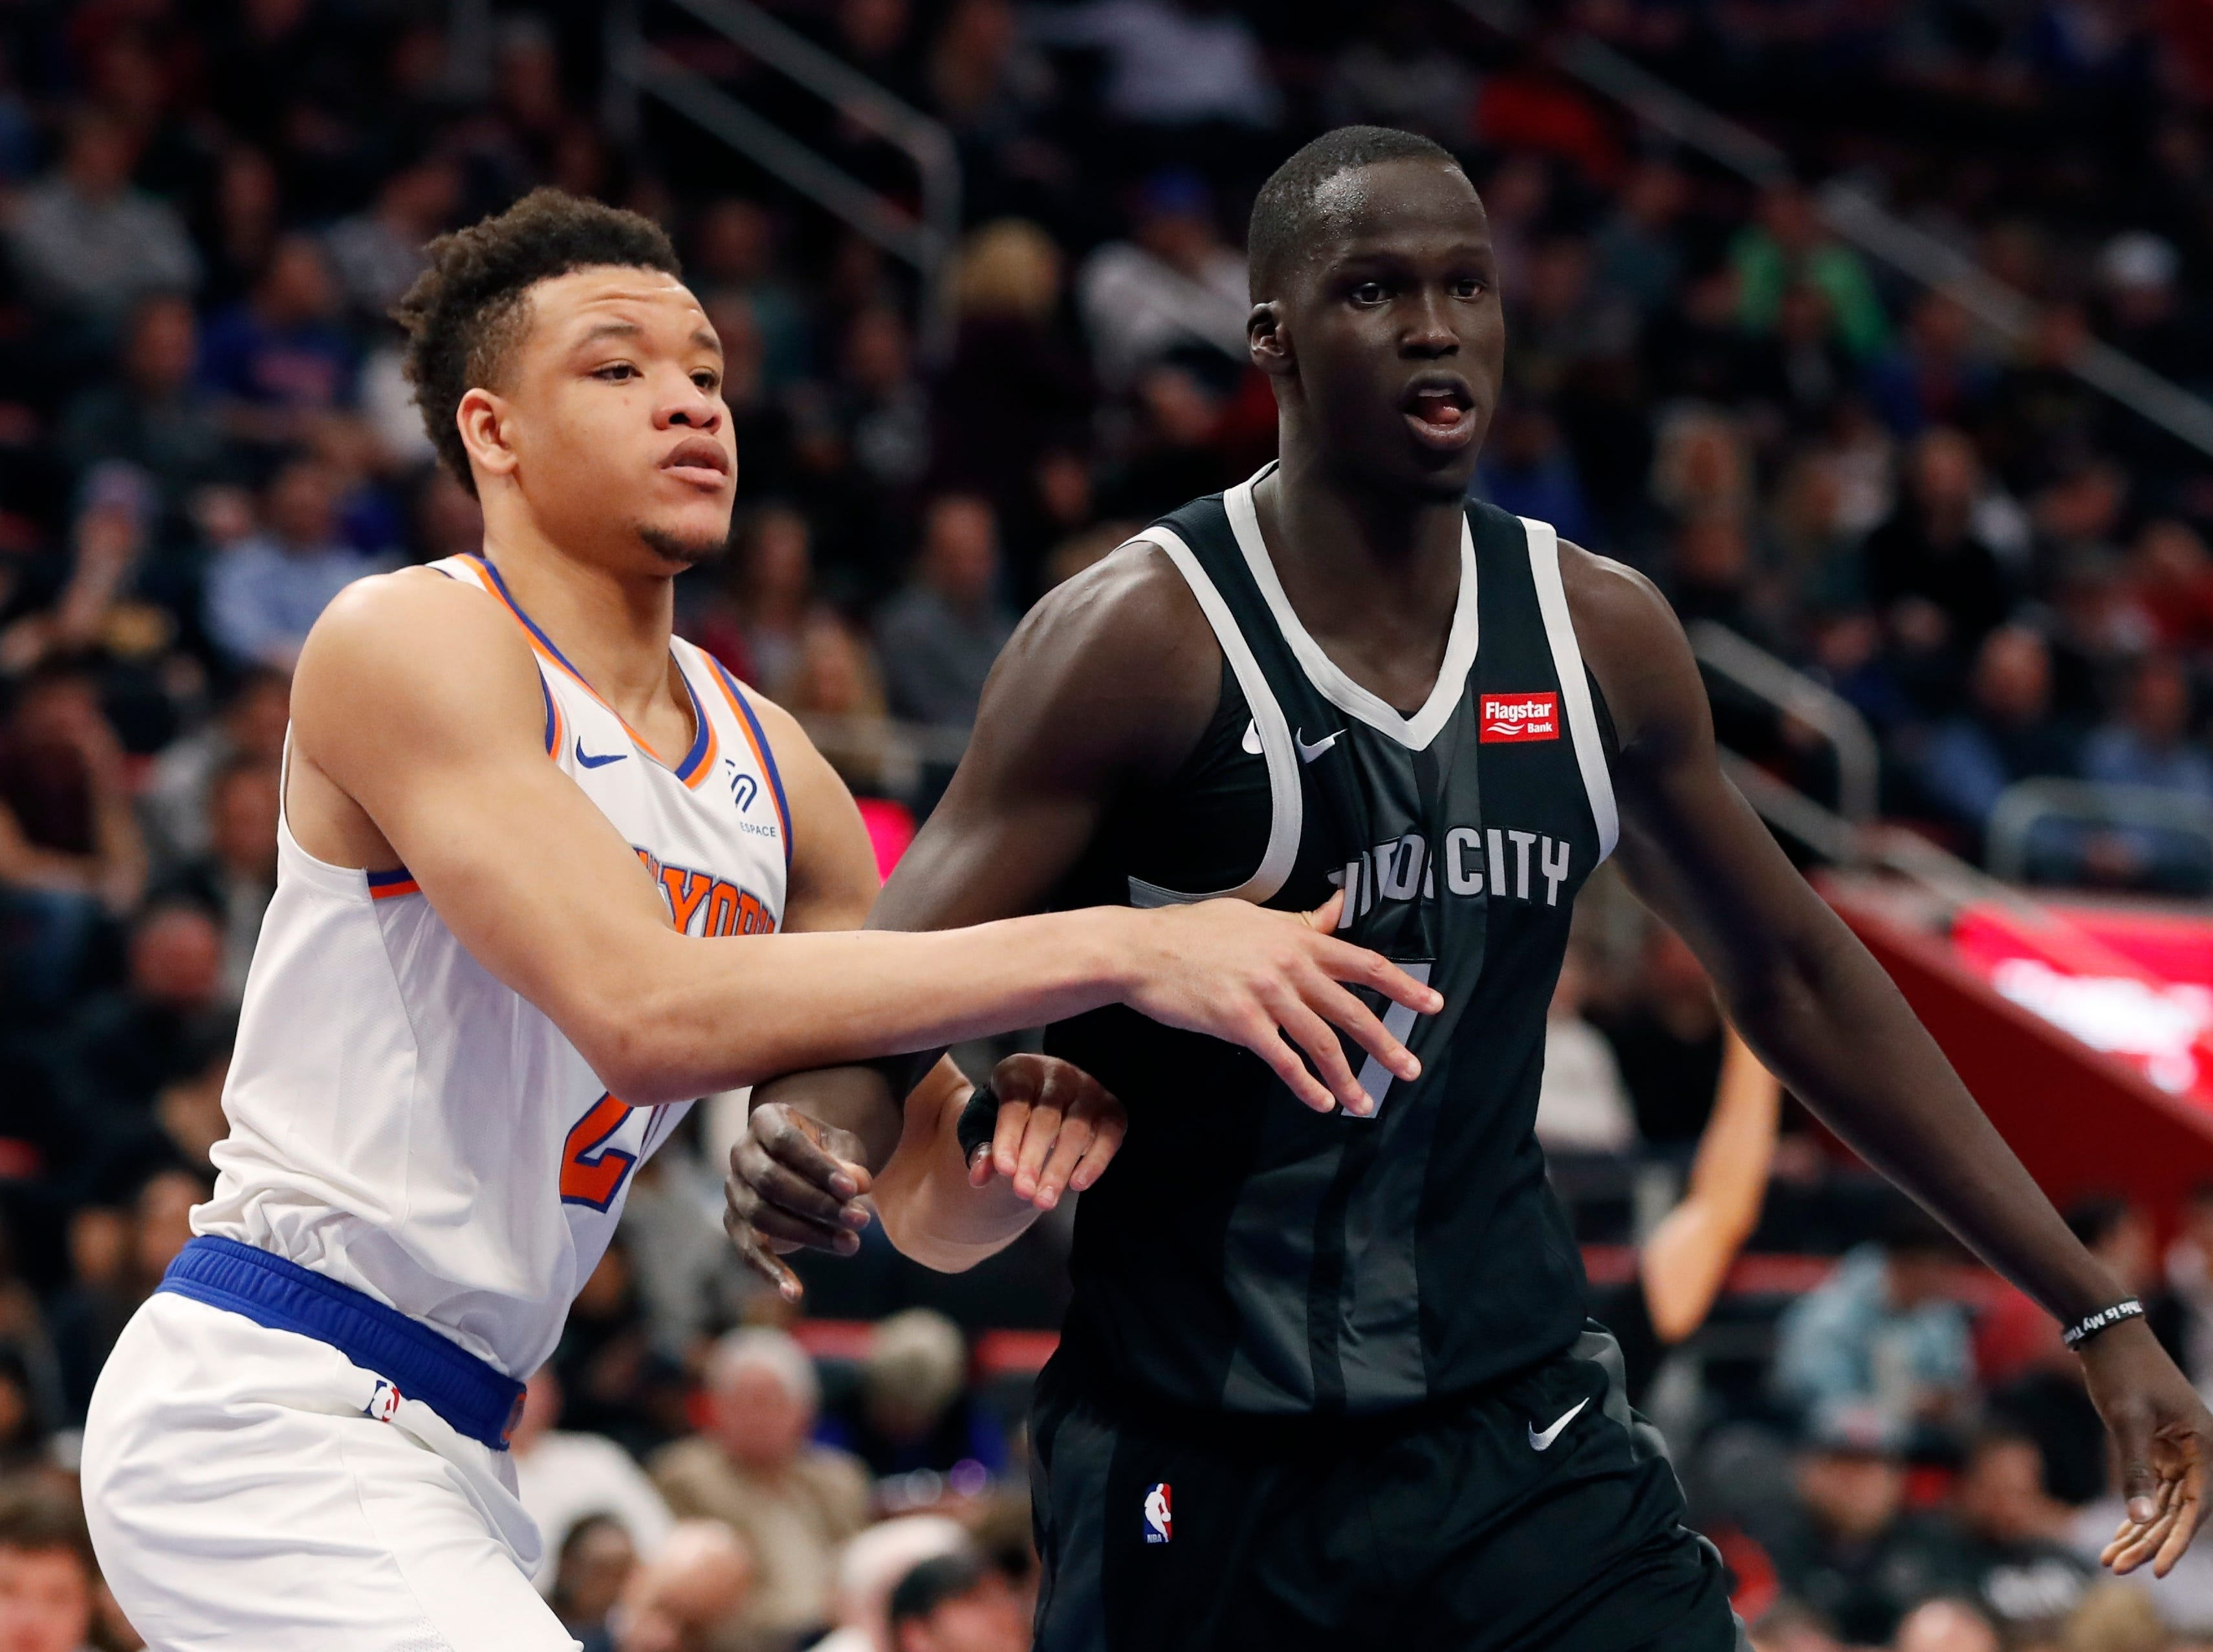 New Detroit Pistons forward Thon Maker (7) is defended by New York Knicks forward Kevin Knox during the first half of an NBA basketball game Friday, Feb. 8, 2019, in Detroit.